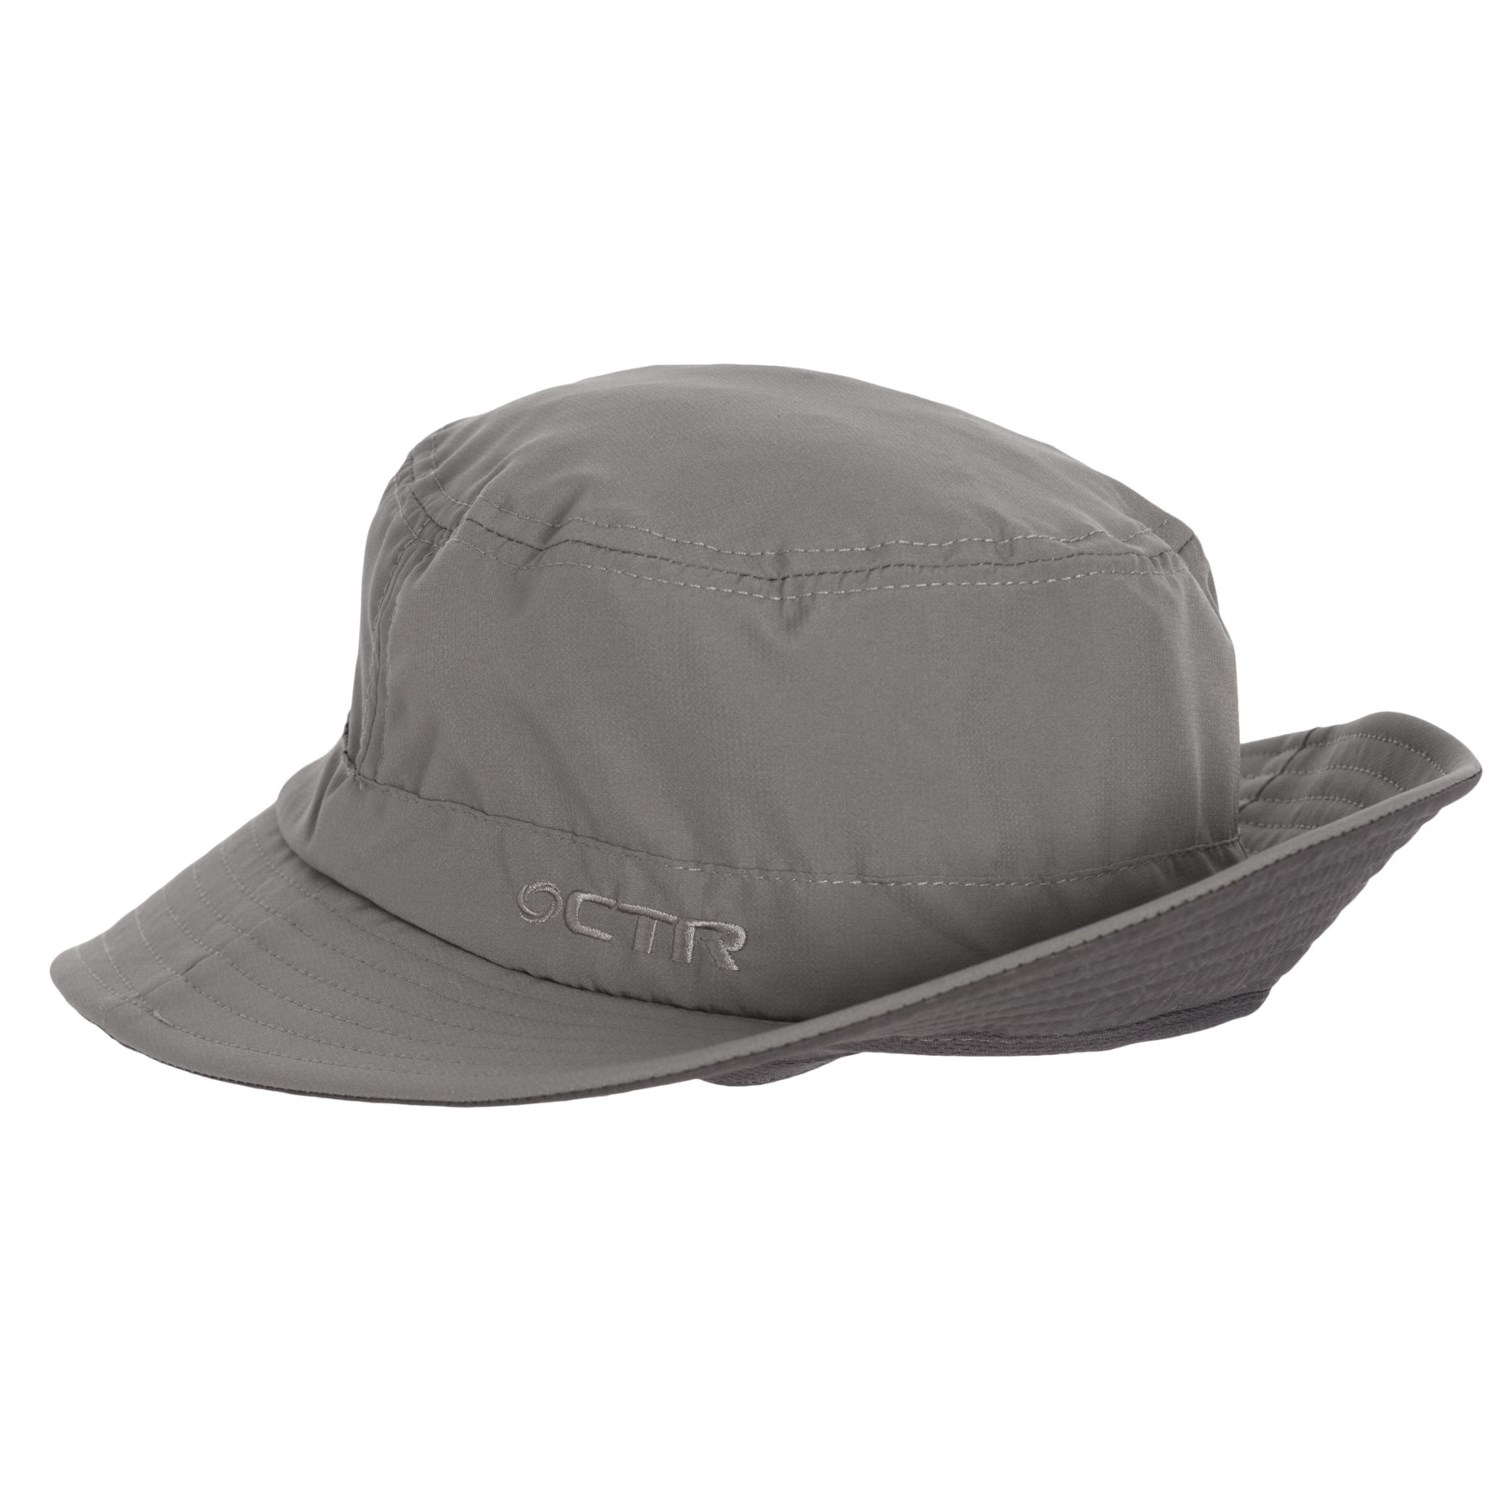 c5563952e32 CTR Summit Bucket Hat (For Men and Women) - Save 27%